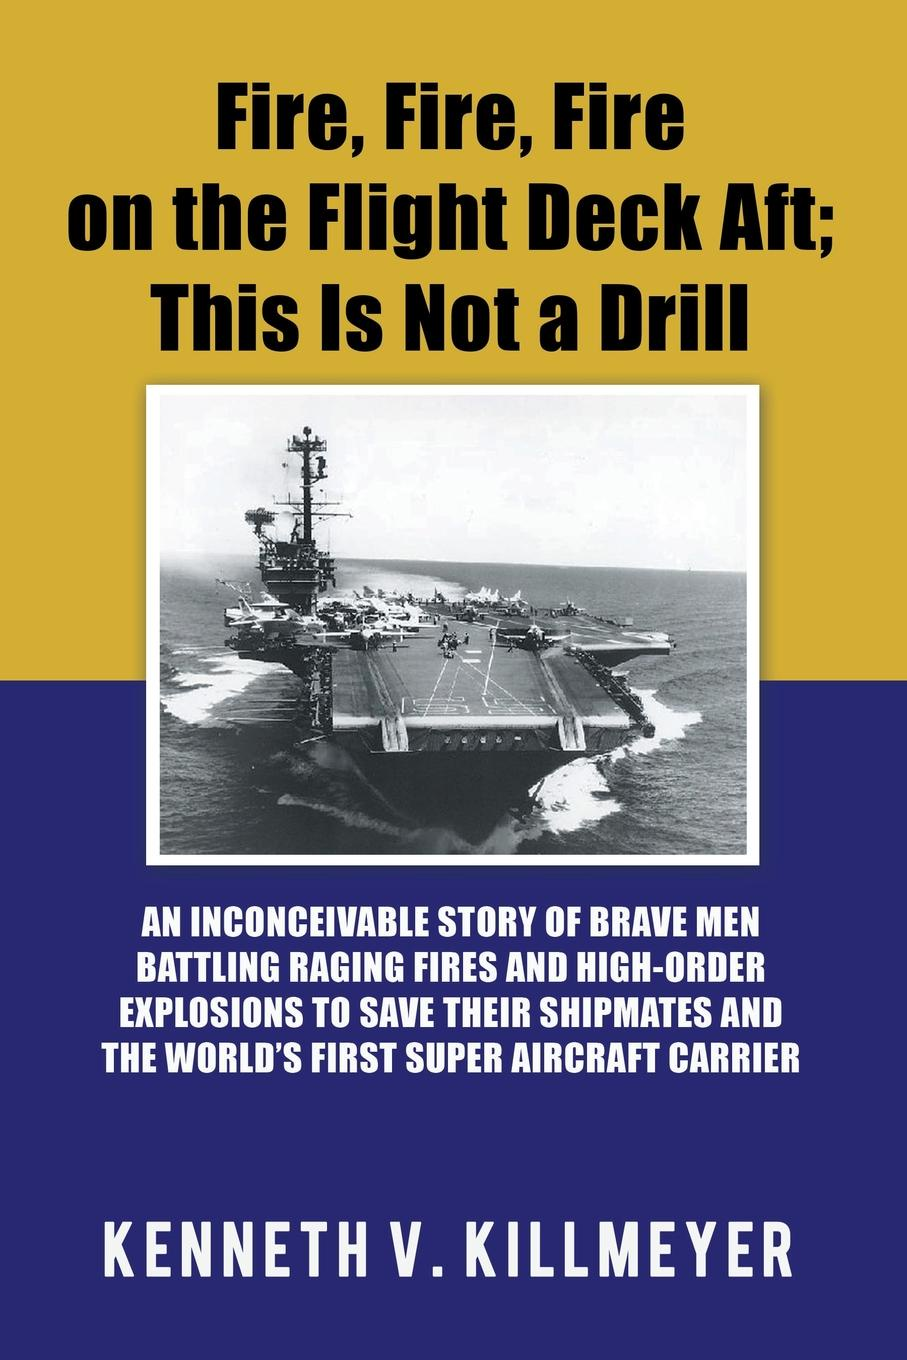 Kenneth V. Killmeyer Fire, Fire, Fire on the Flight Deck Aft; This Is Not a Drill. An Inconceivable Story of Brave Men Battling Raging Fires and High-Order Explosions to Save Their Shipmates and the World'S First Super Aircraft Carrier цена